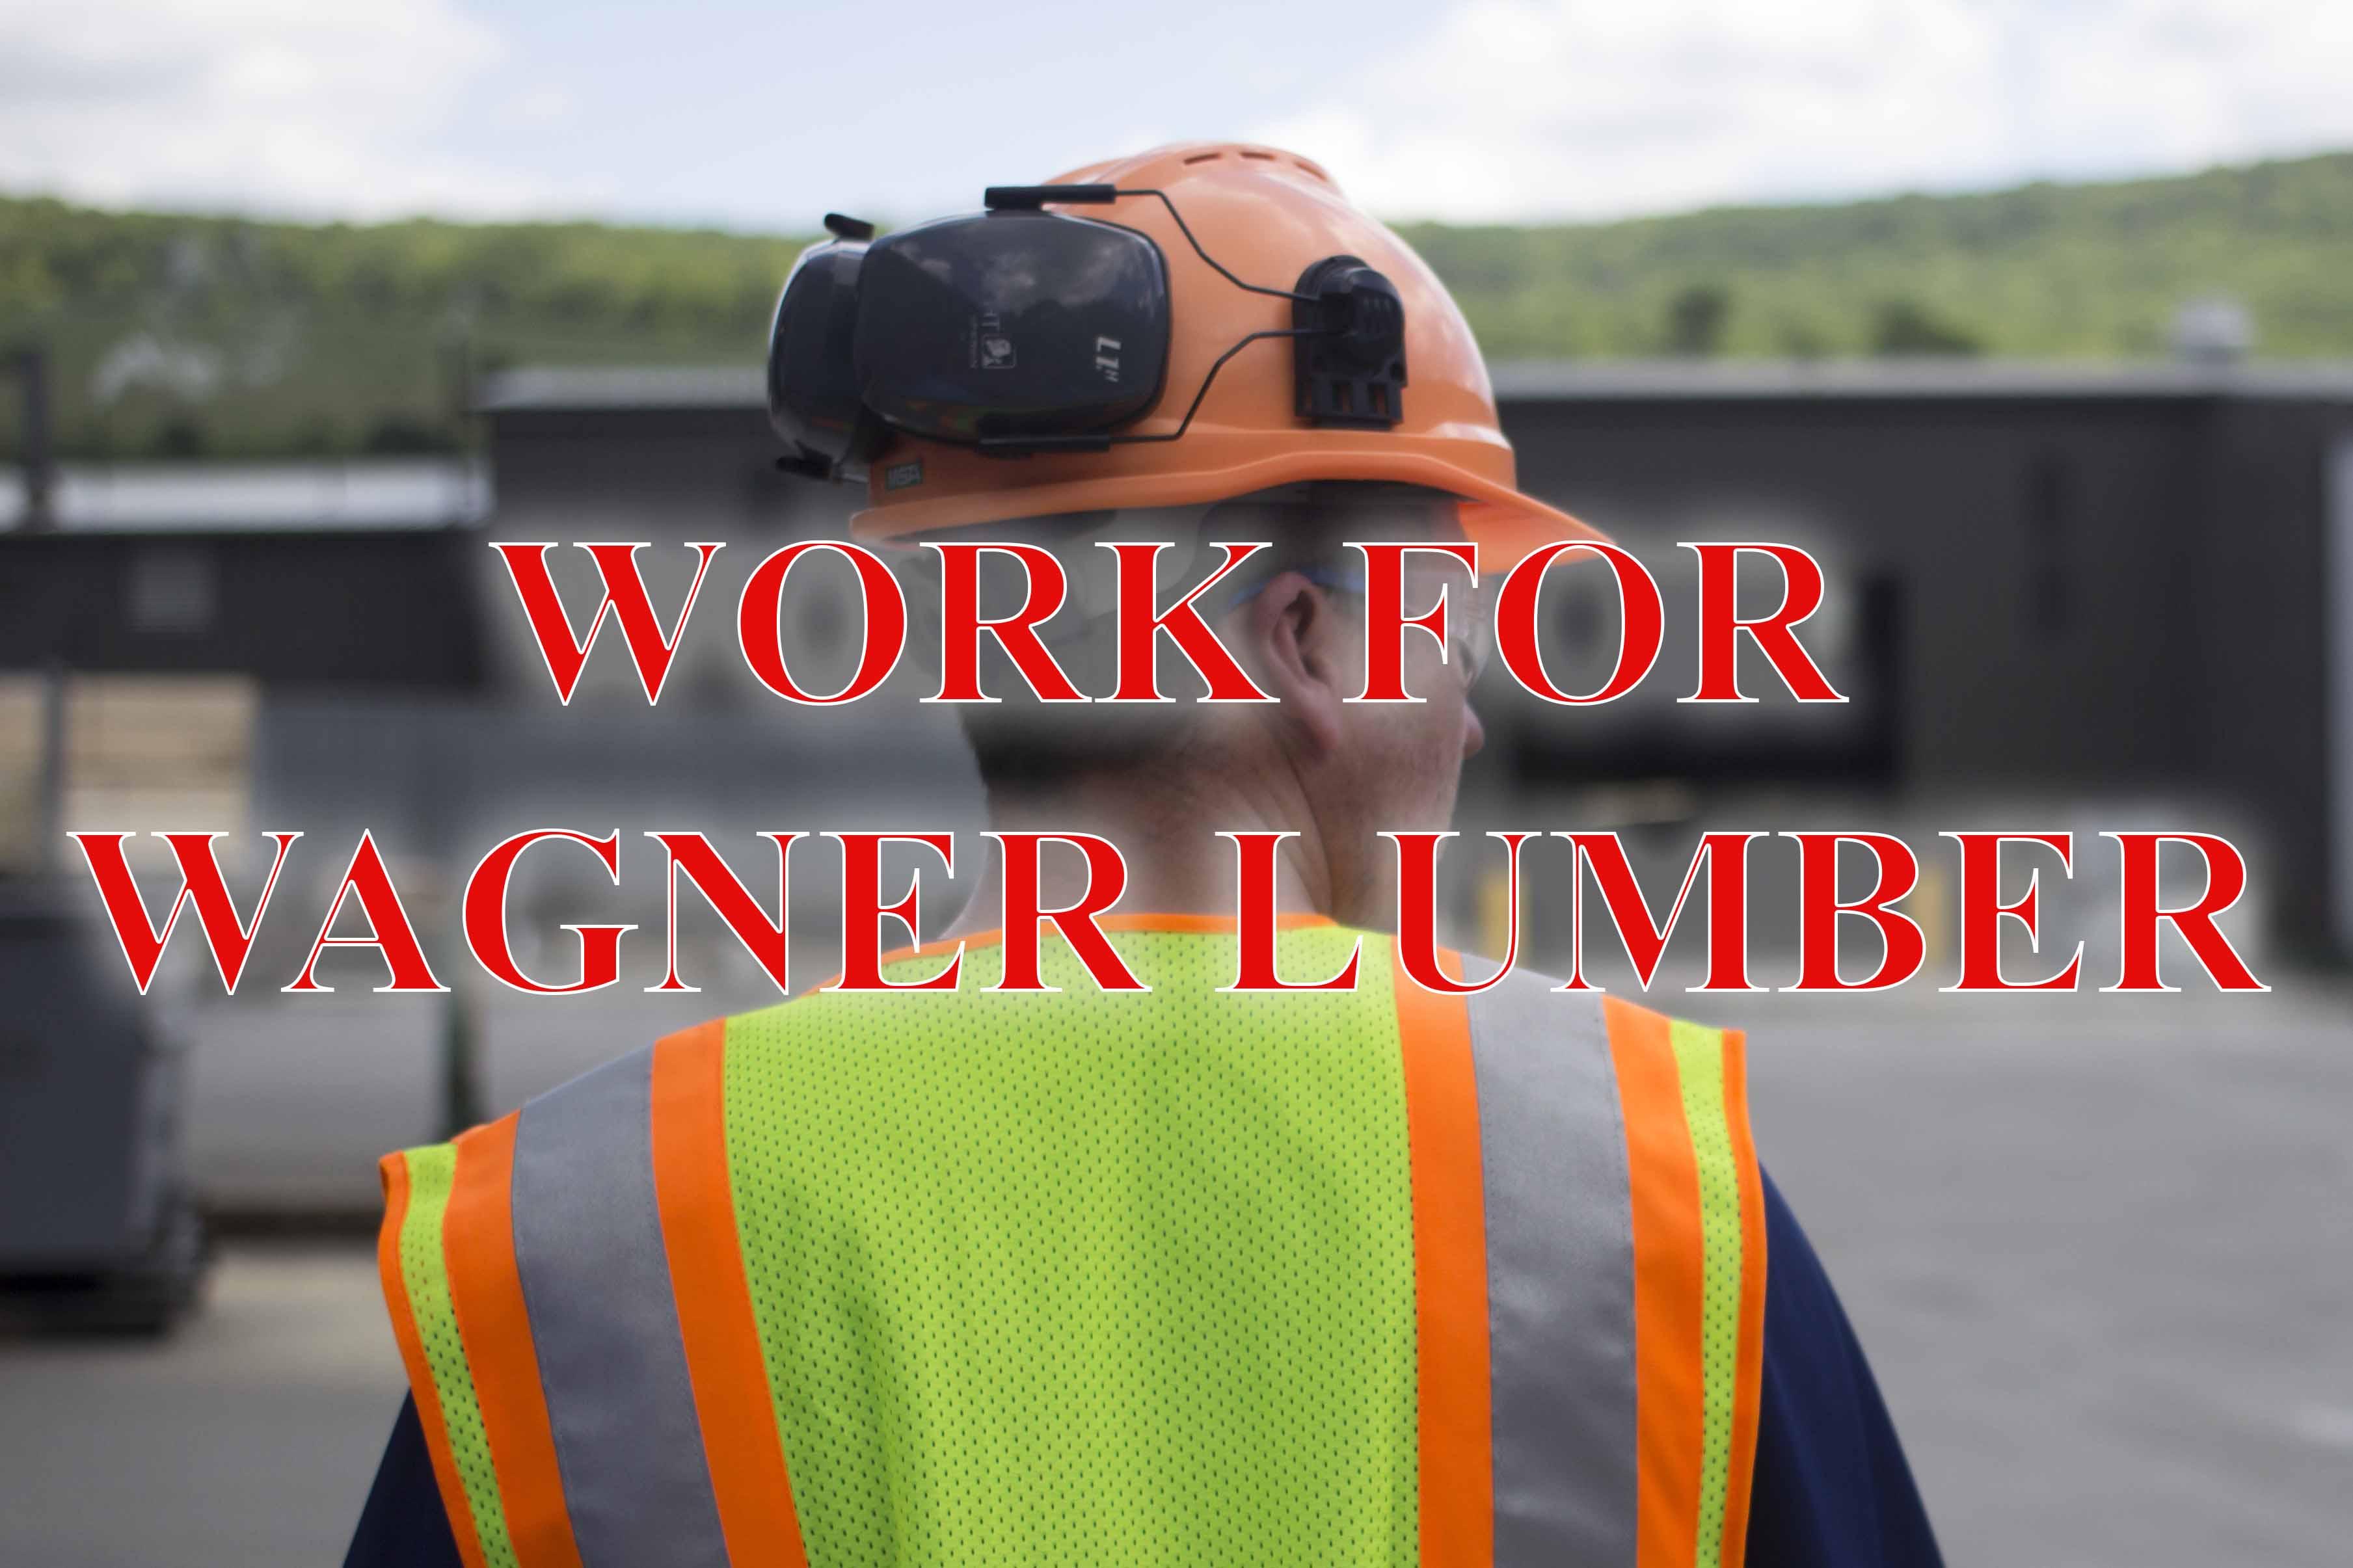 work for wagner 062117 0010